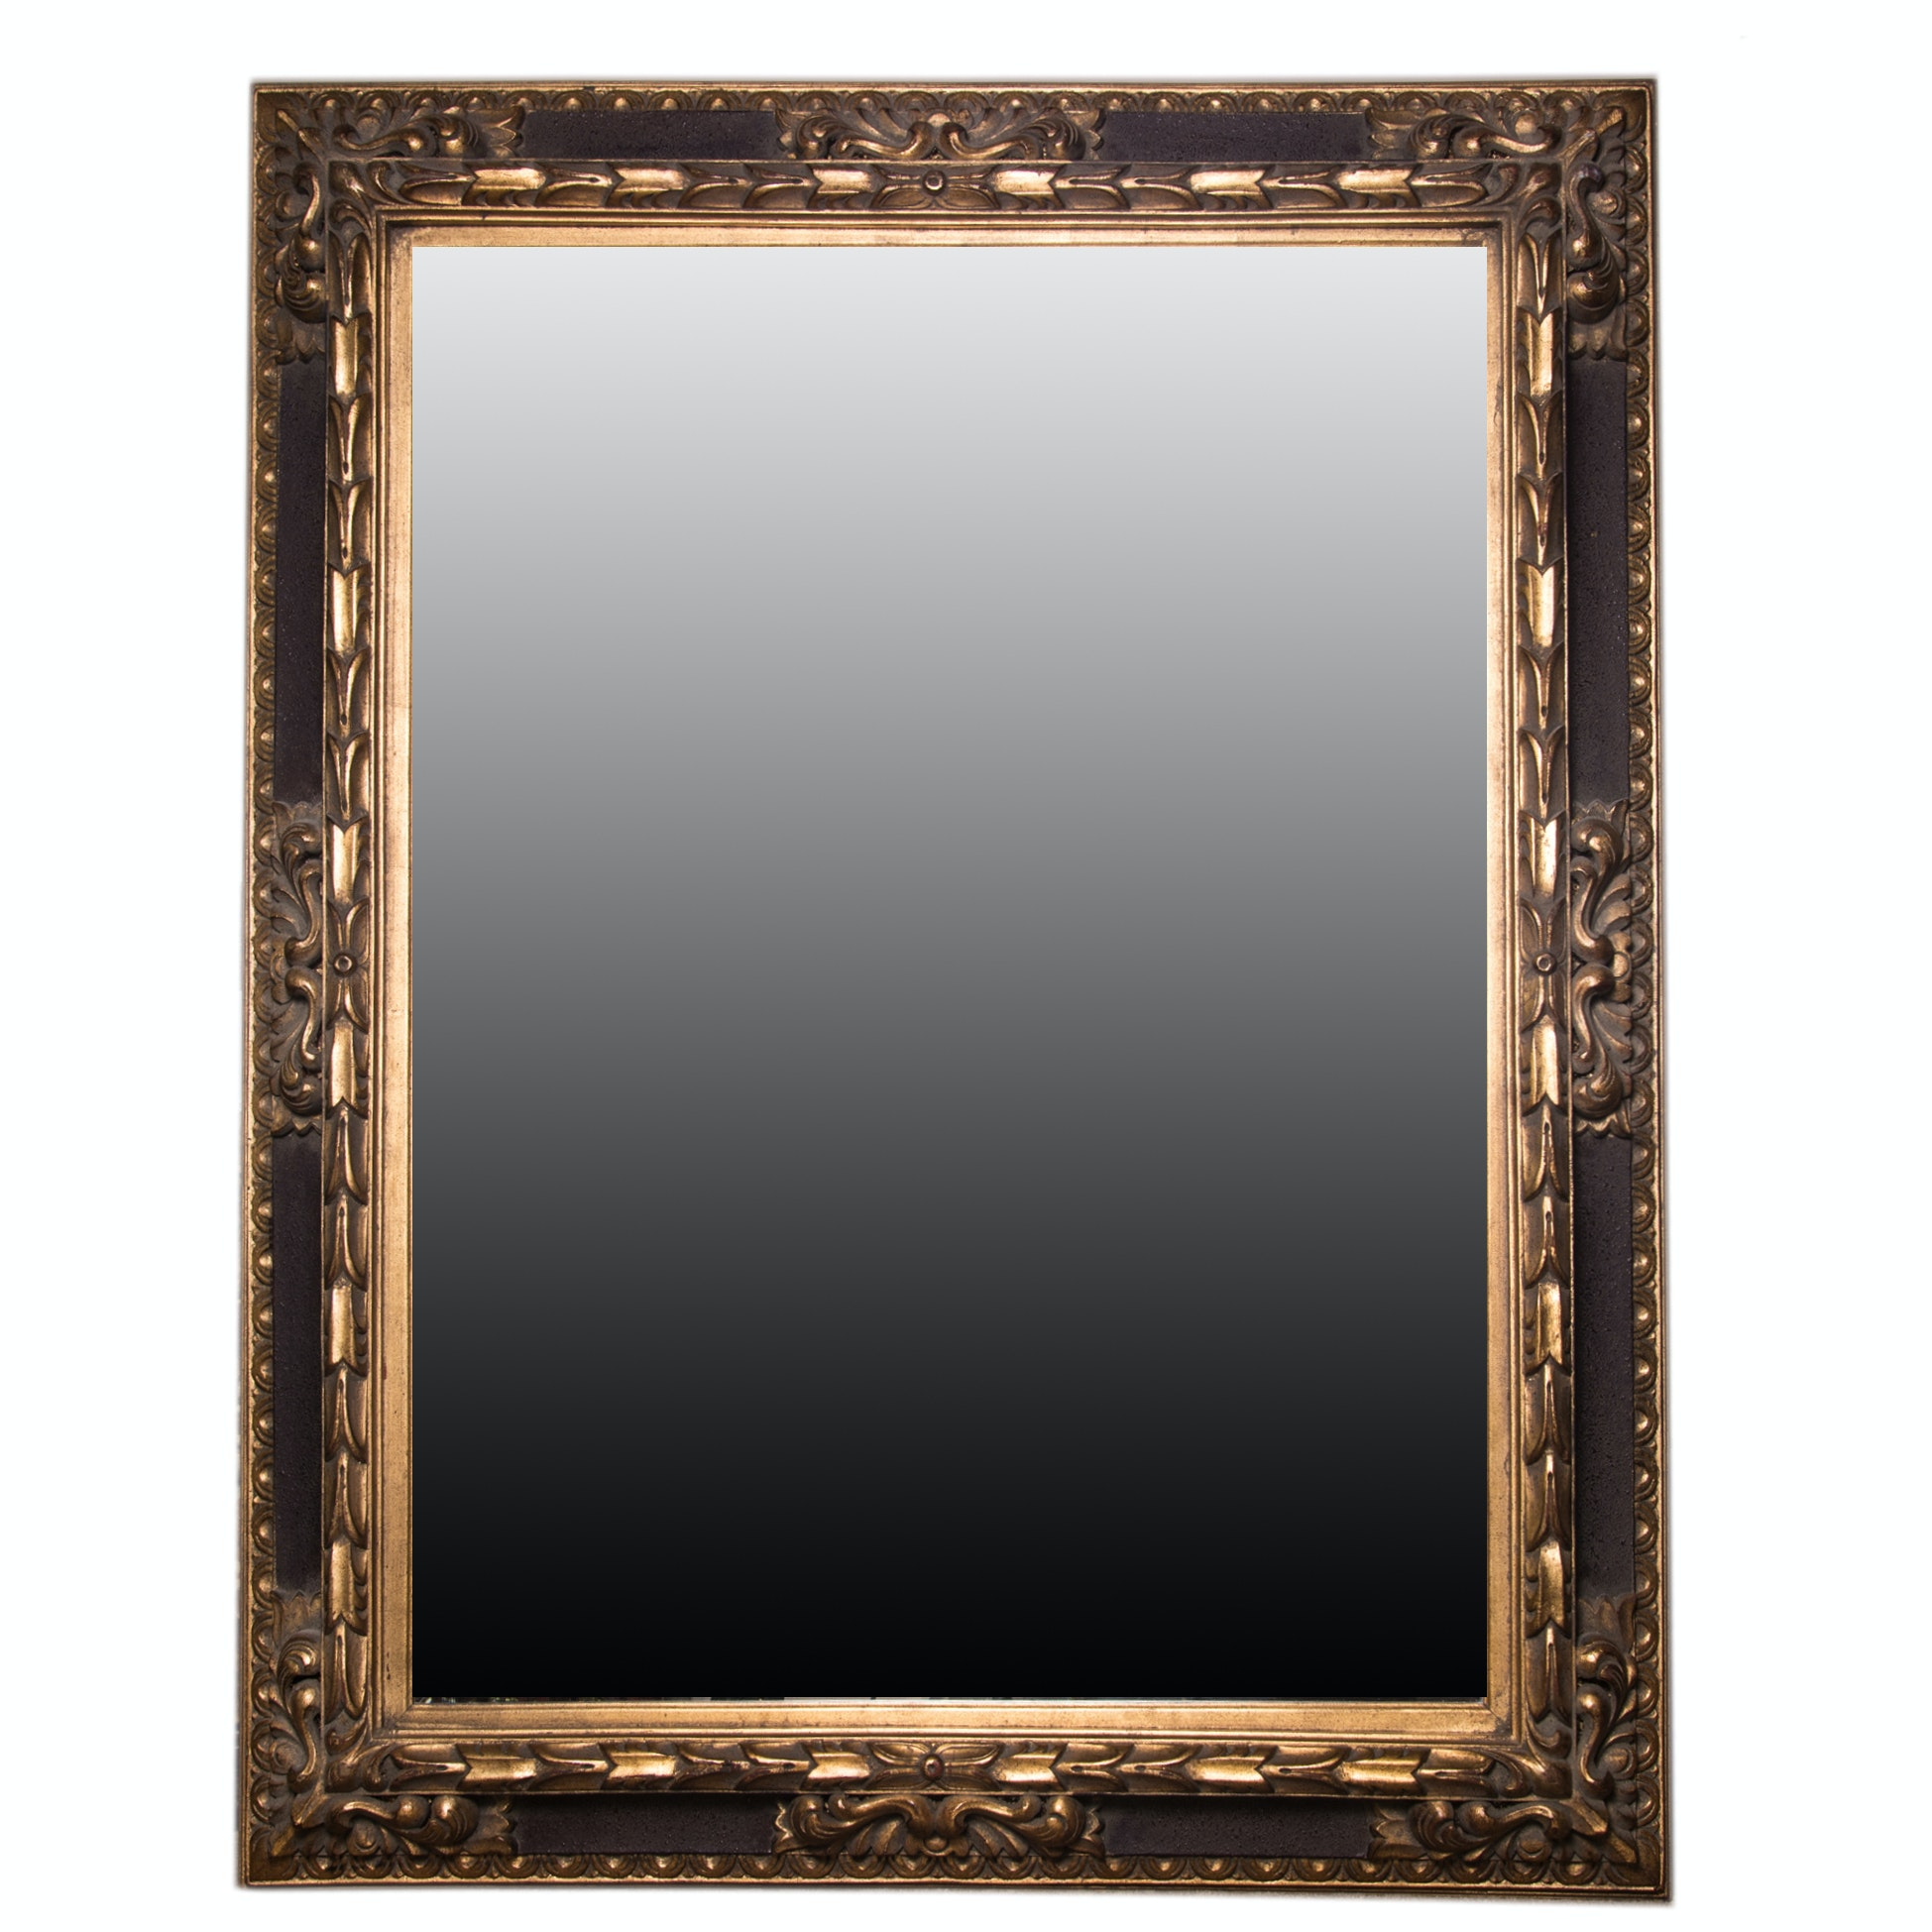 Large Baroque Wall Mirror by Uttermost